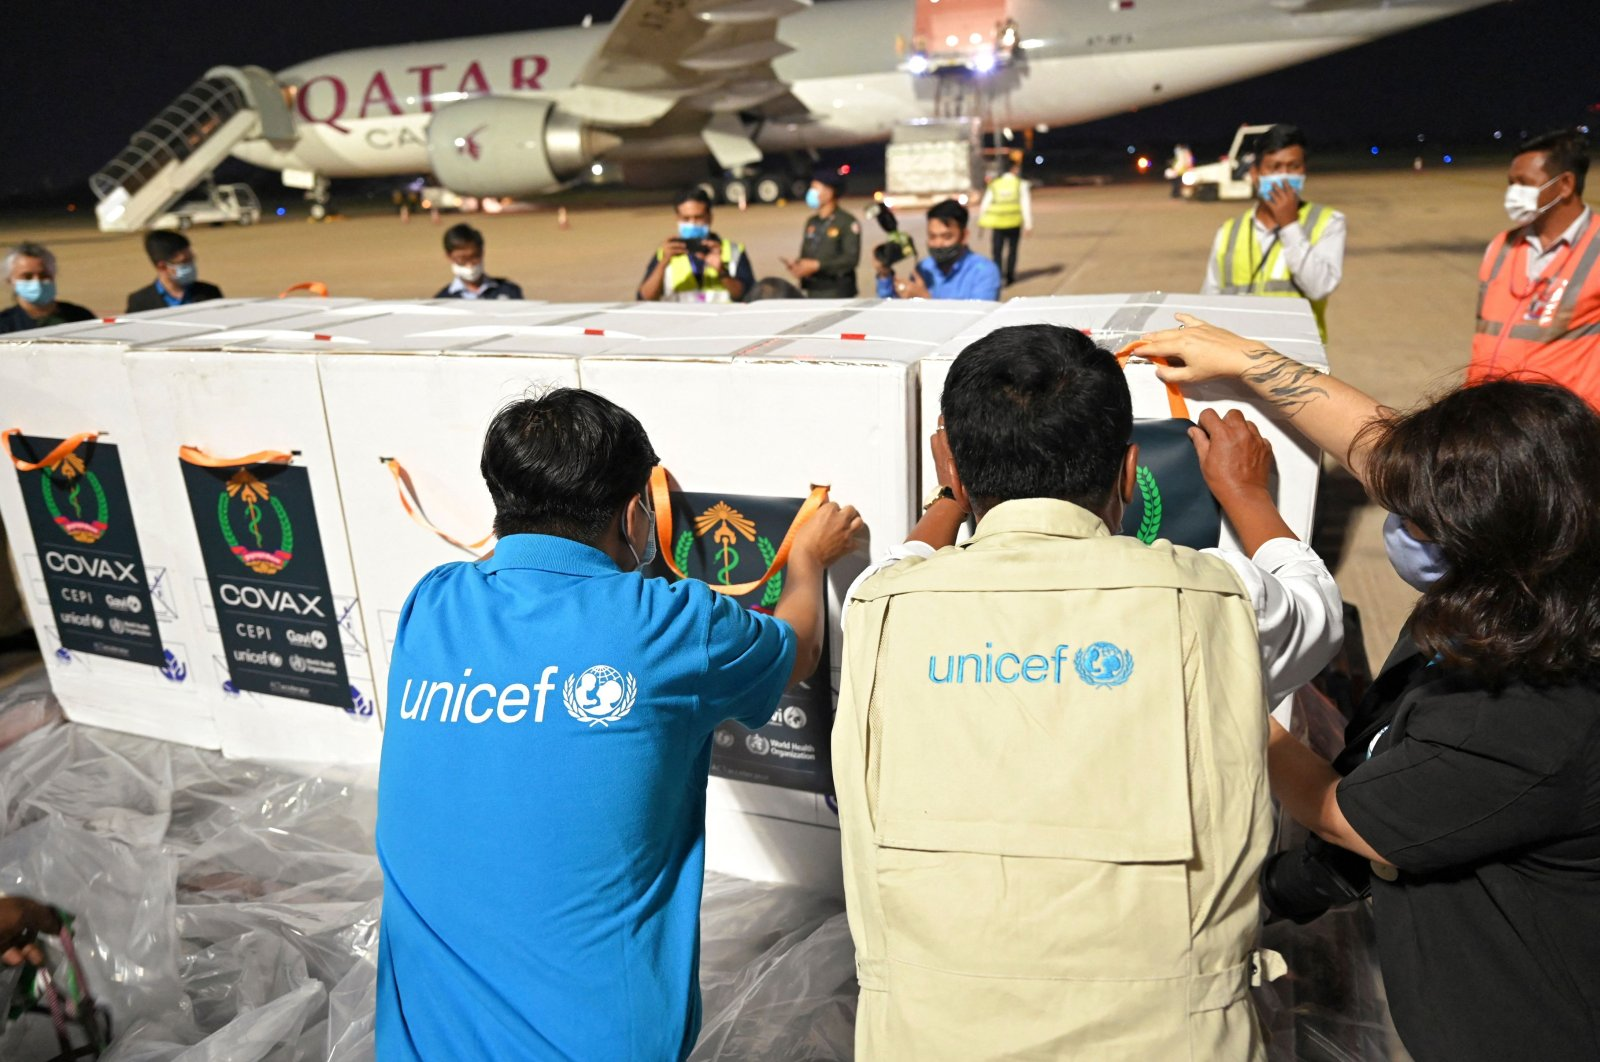 UNICEF staff place stickers on boxes of COVID-19 vaccines during the handover ceremony of the first allocation of Indian-made AstraZeneca vaccine from the Covax facility, at Phnom Penh International Airport on March 2, 2021. (AFP Photo)